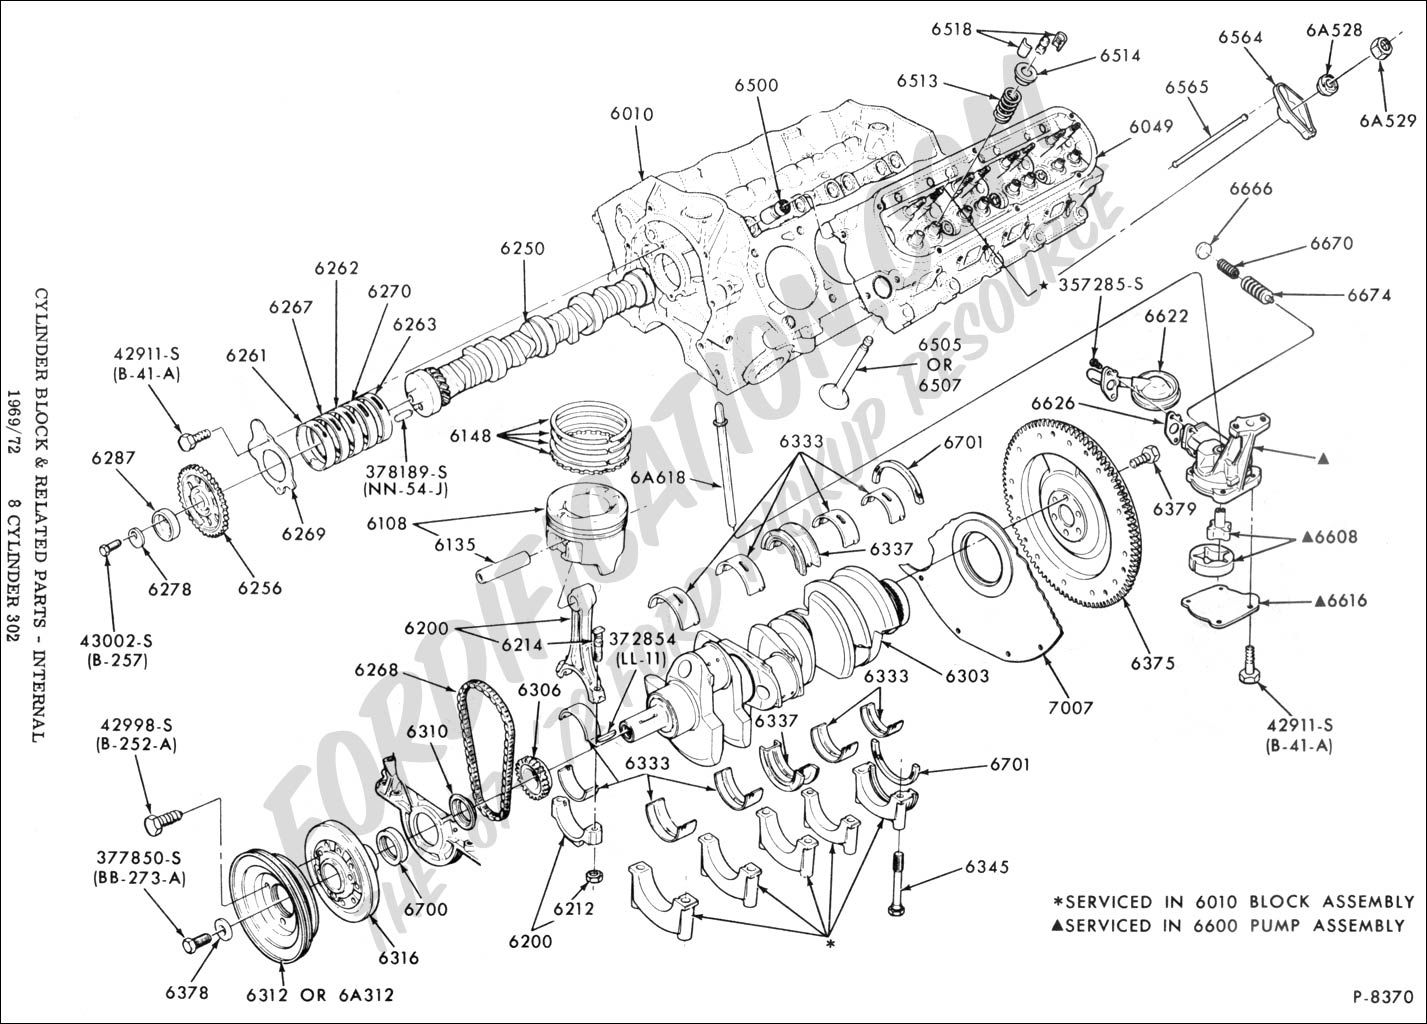 image result for ford 302 parts list | diagram, engineering, geology rocks  pinterest